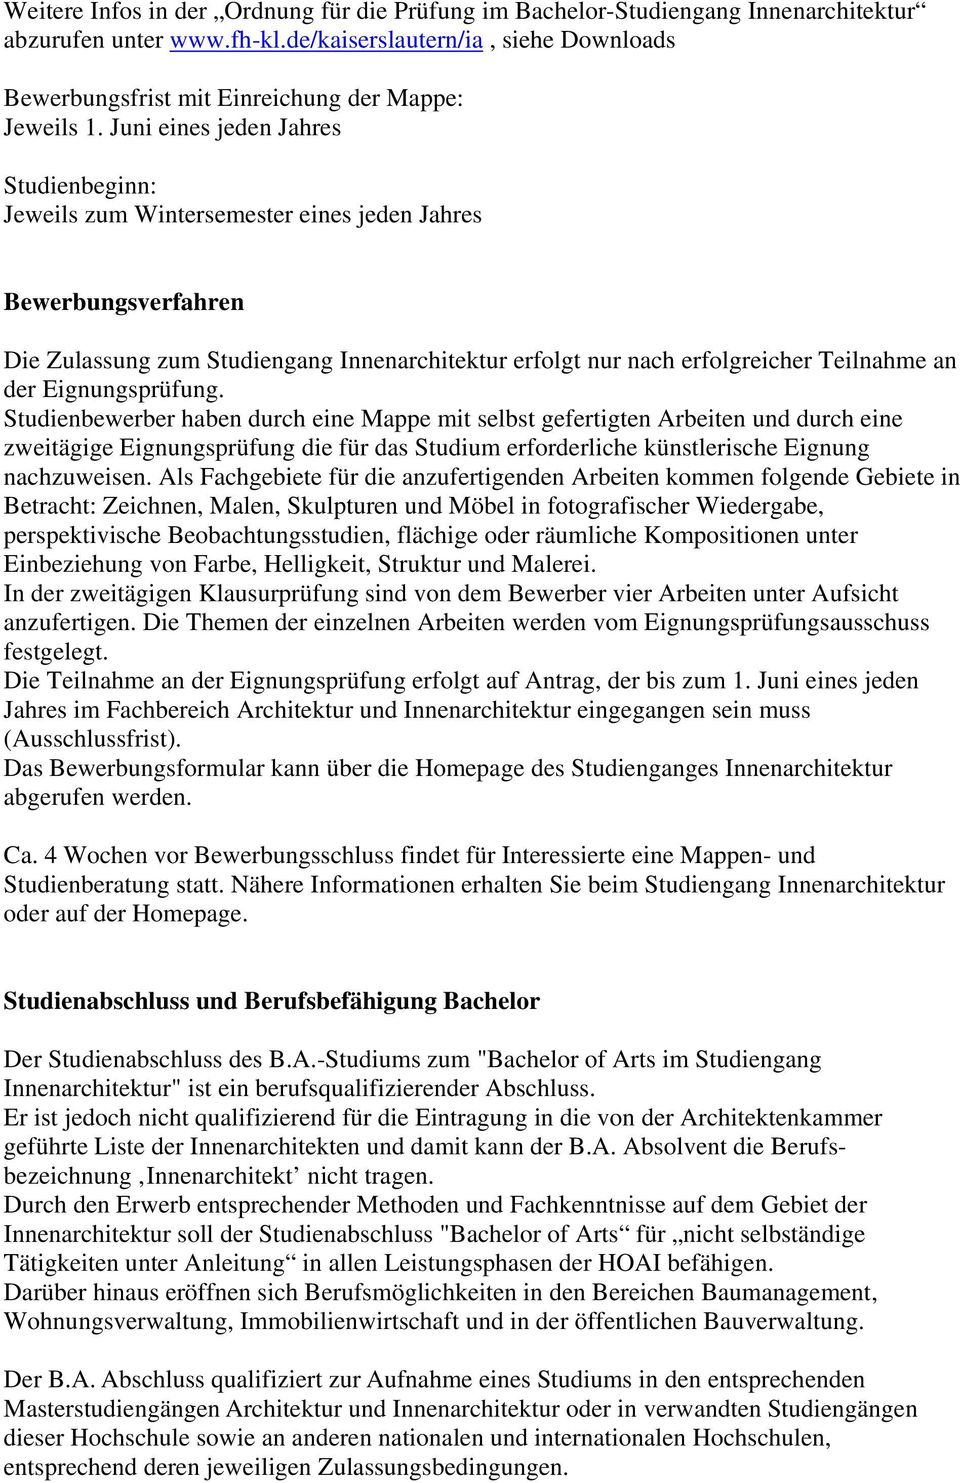 Innenarchitektur oldenburg studium for Innenarchitektur studium